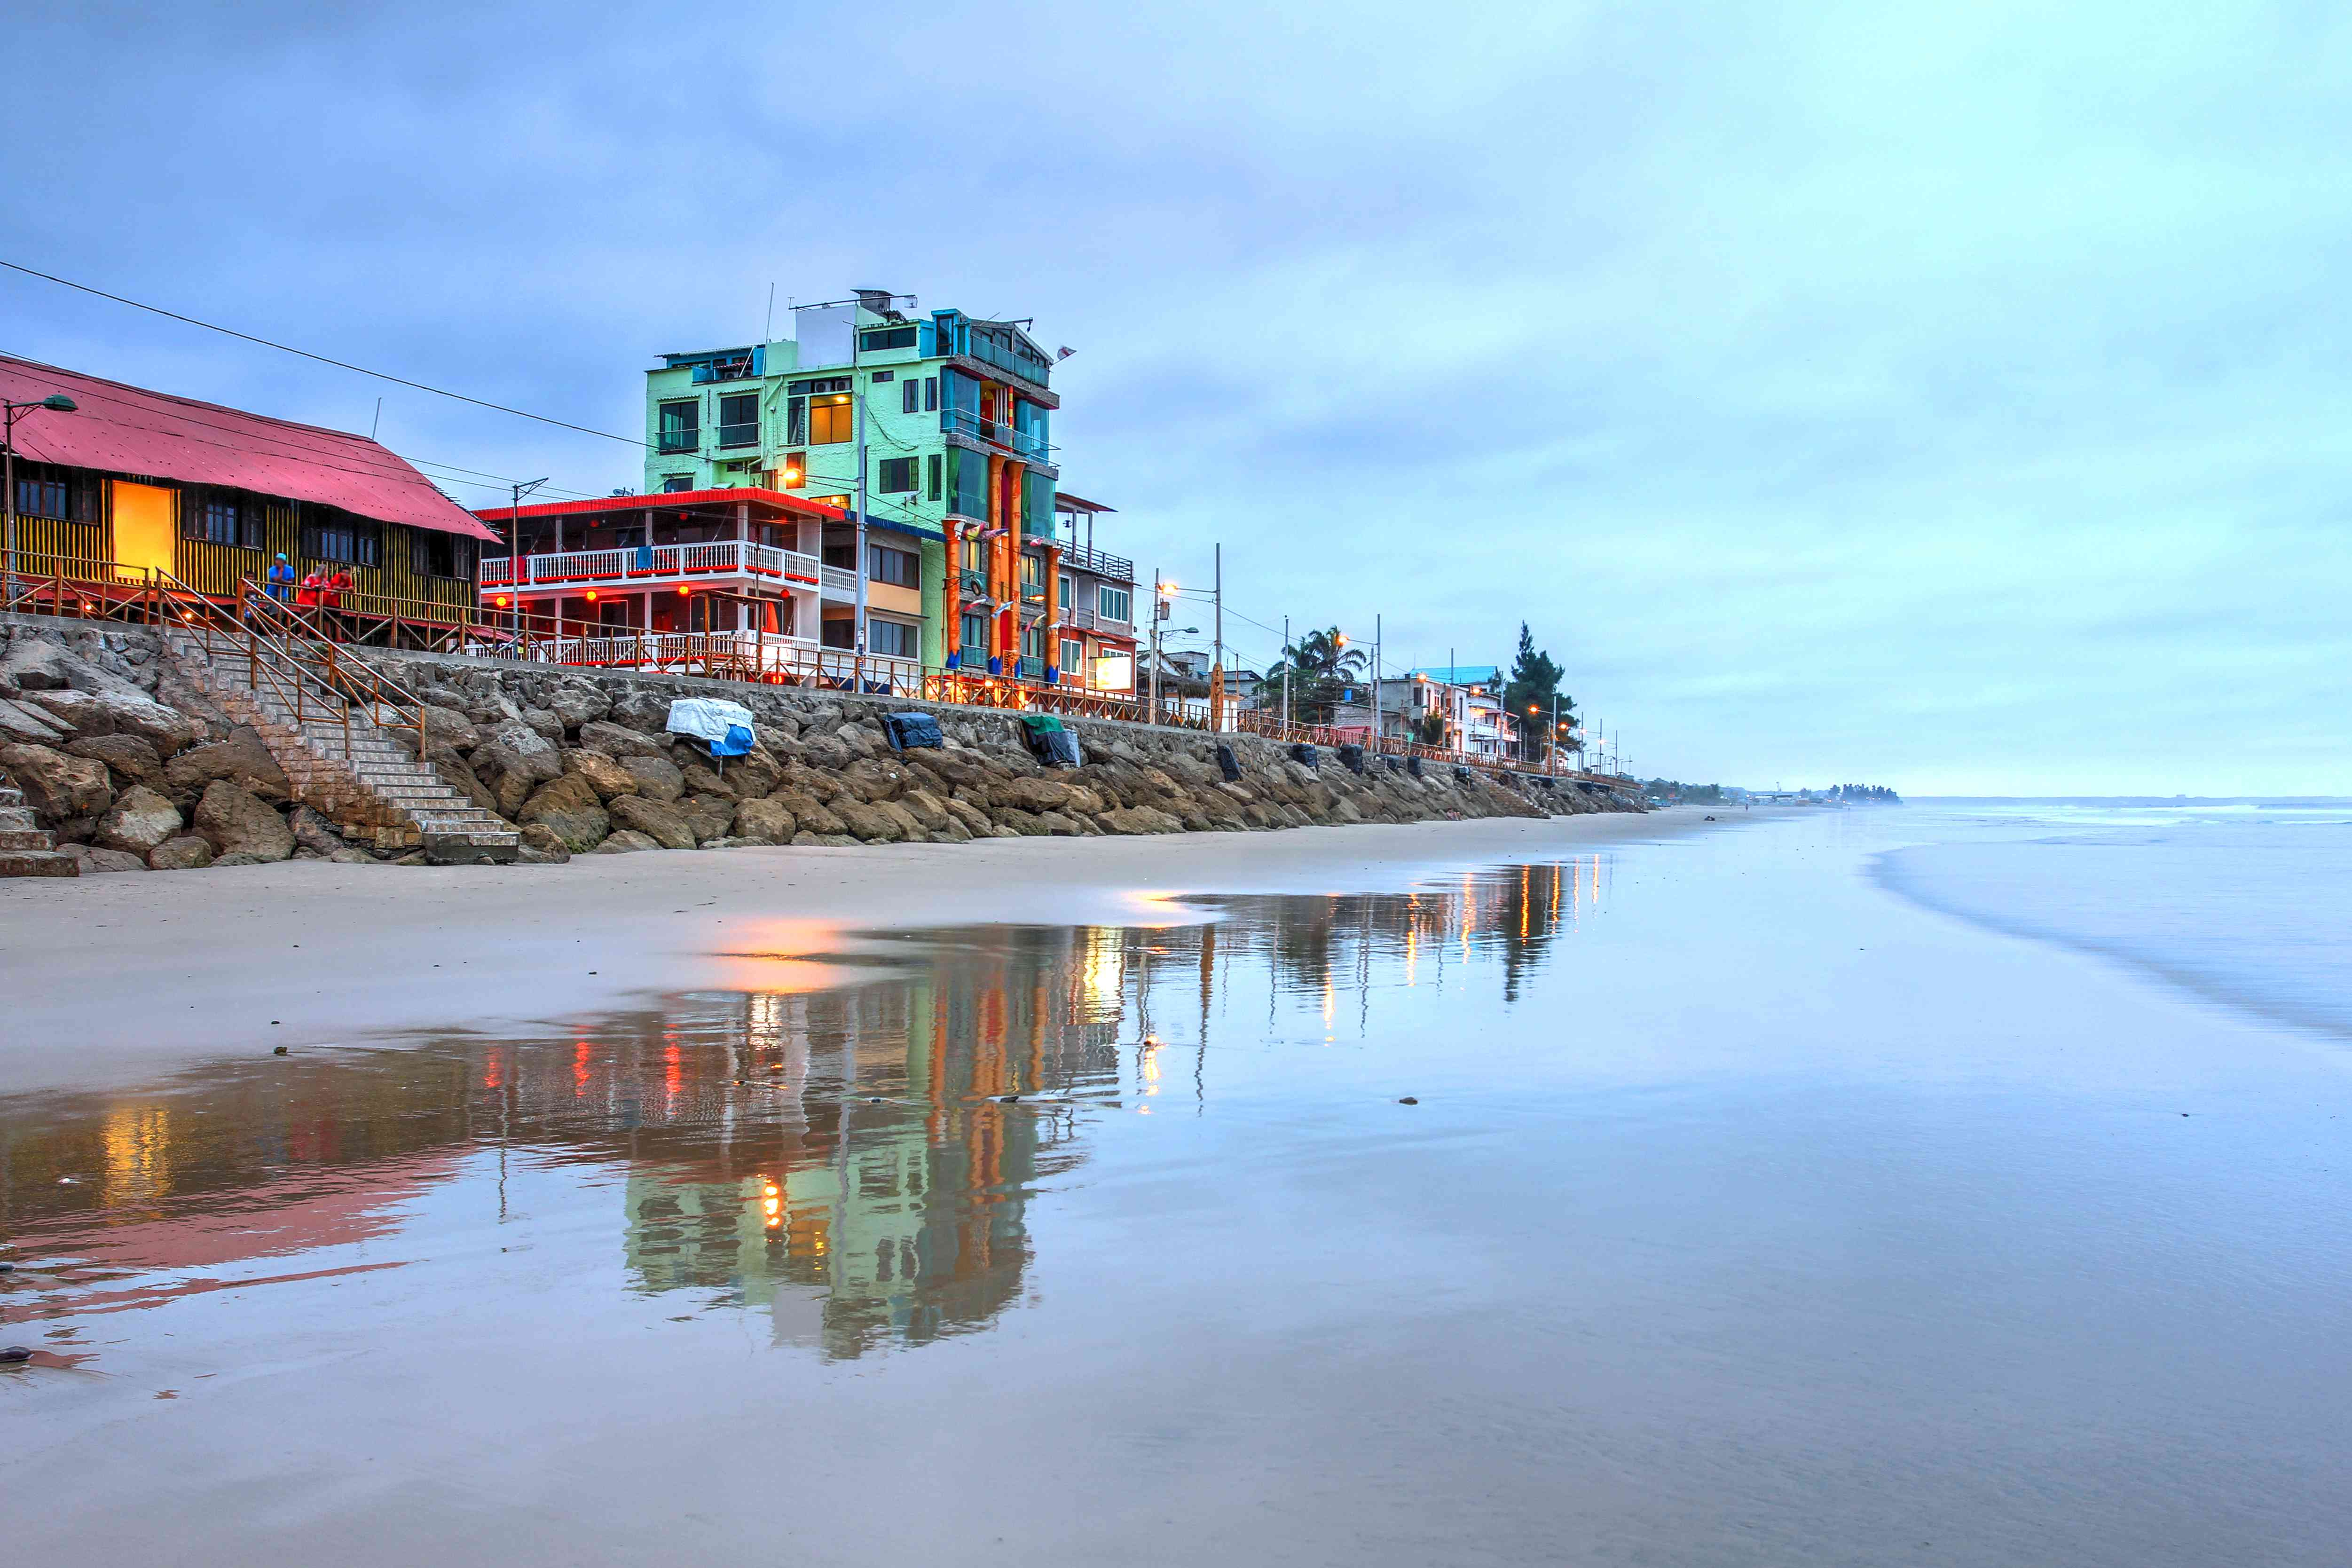 Beach front evening landscape in the small resort town of Montanita, Ecuador